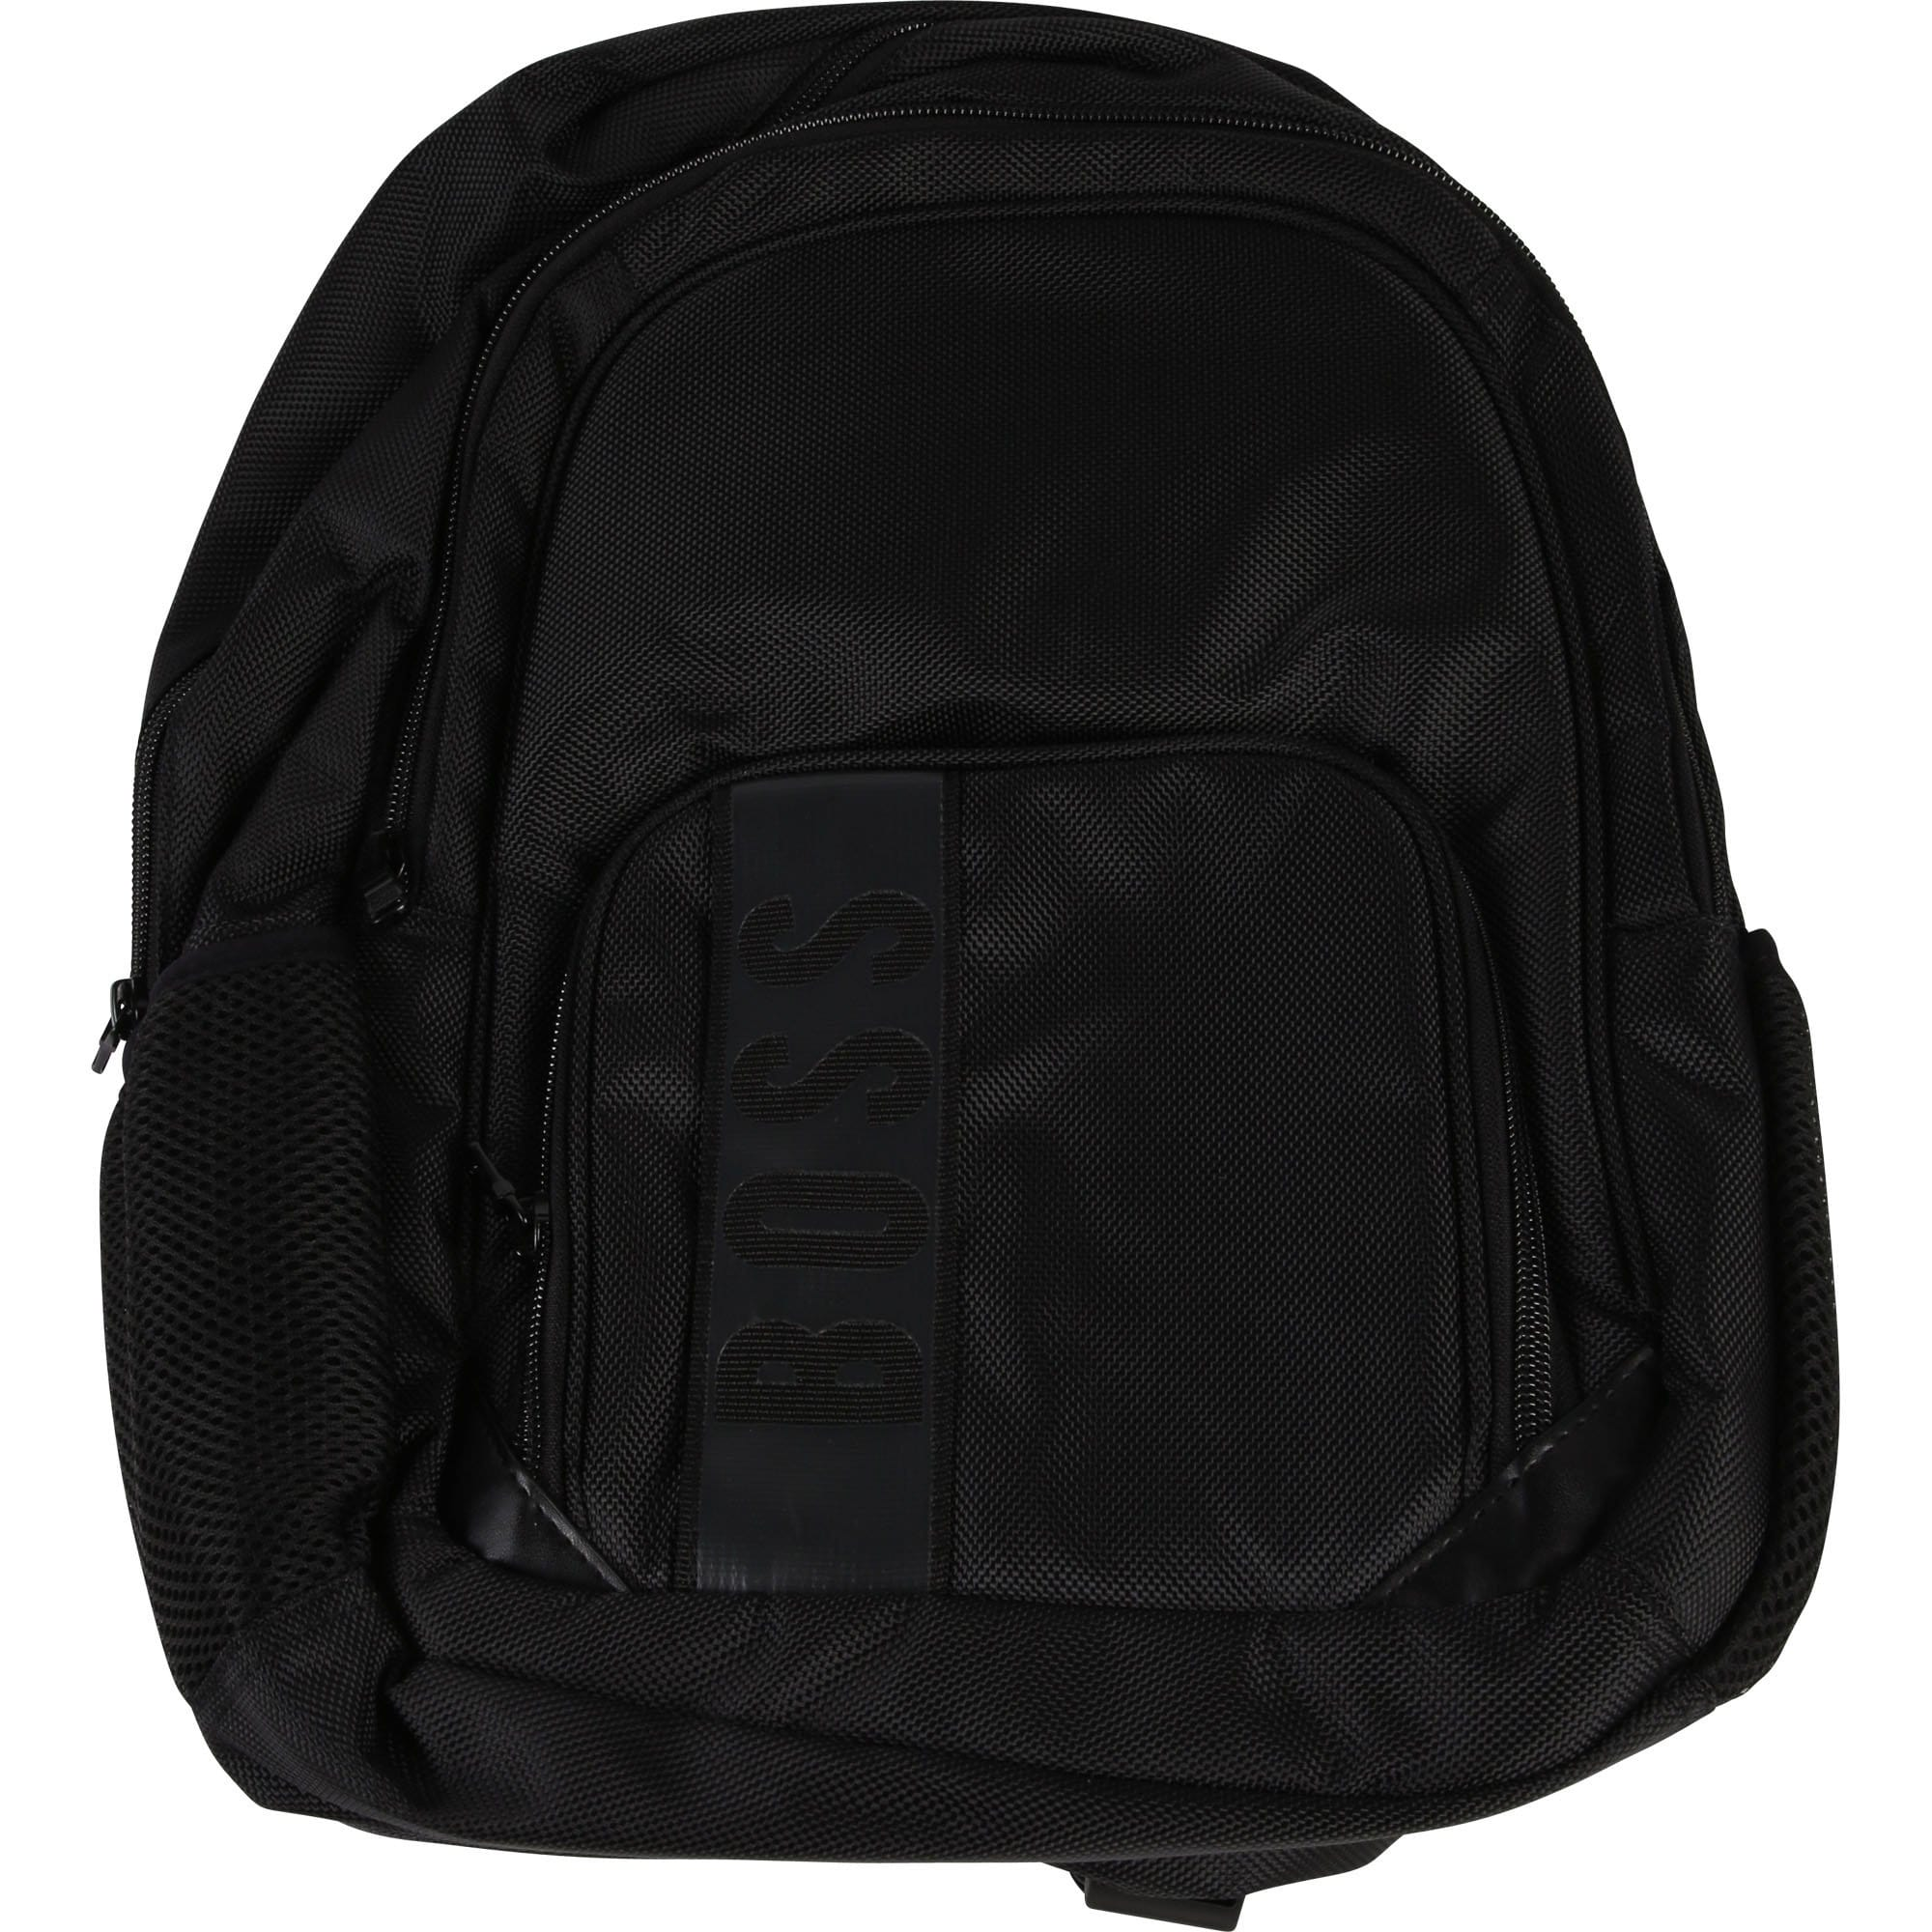 Hugo Boss Backpack (4715945623683)